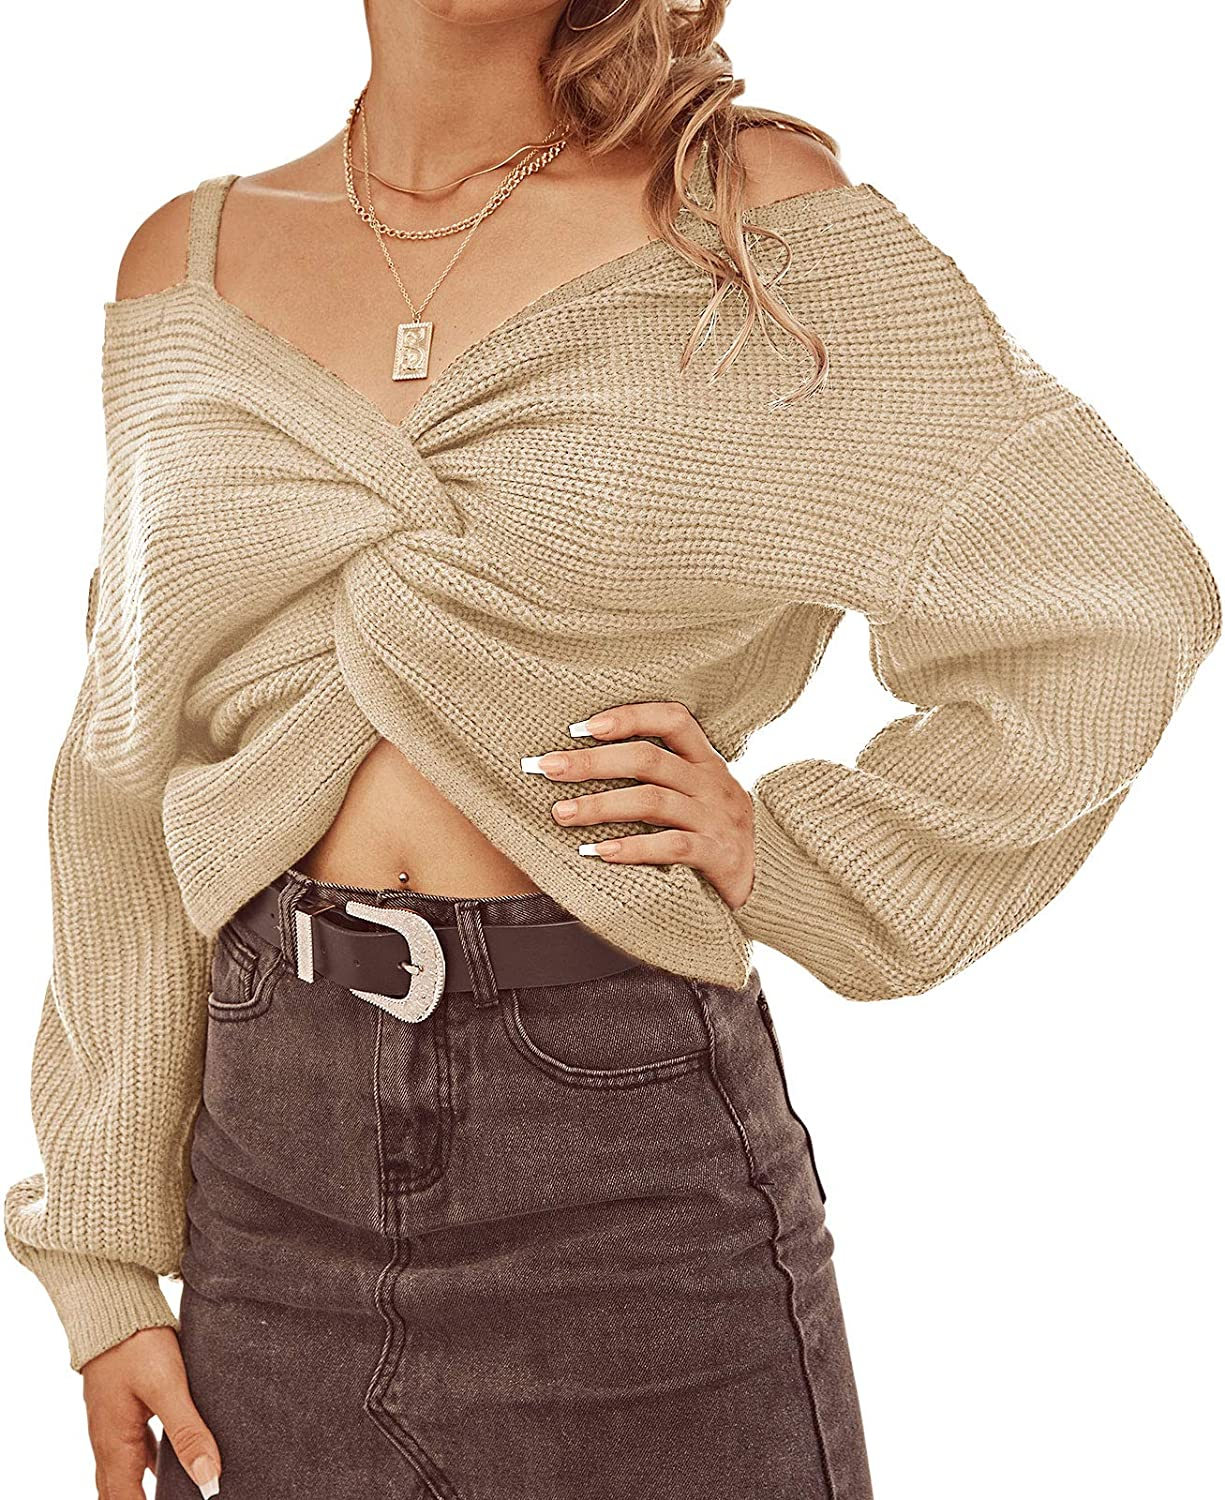 ZAFUL Women's V Neck Cropped Sweater Twist Back Wrap Ripped Long Sleeve Knit Pullover Tops